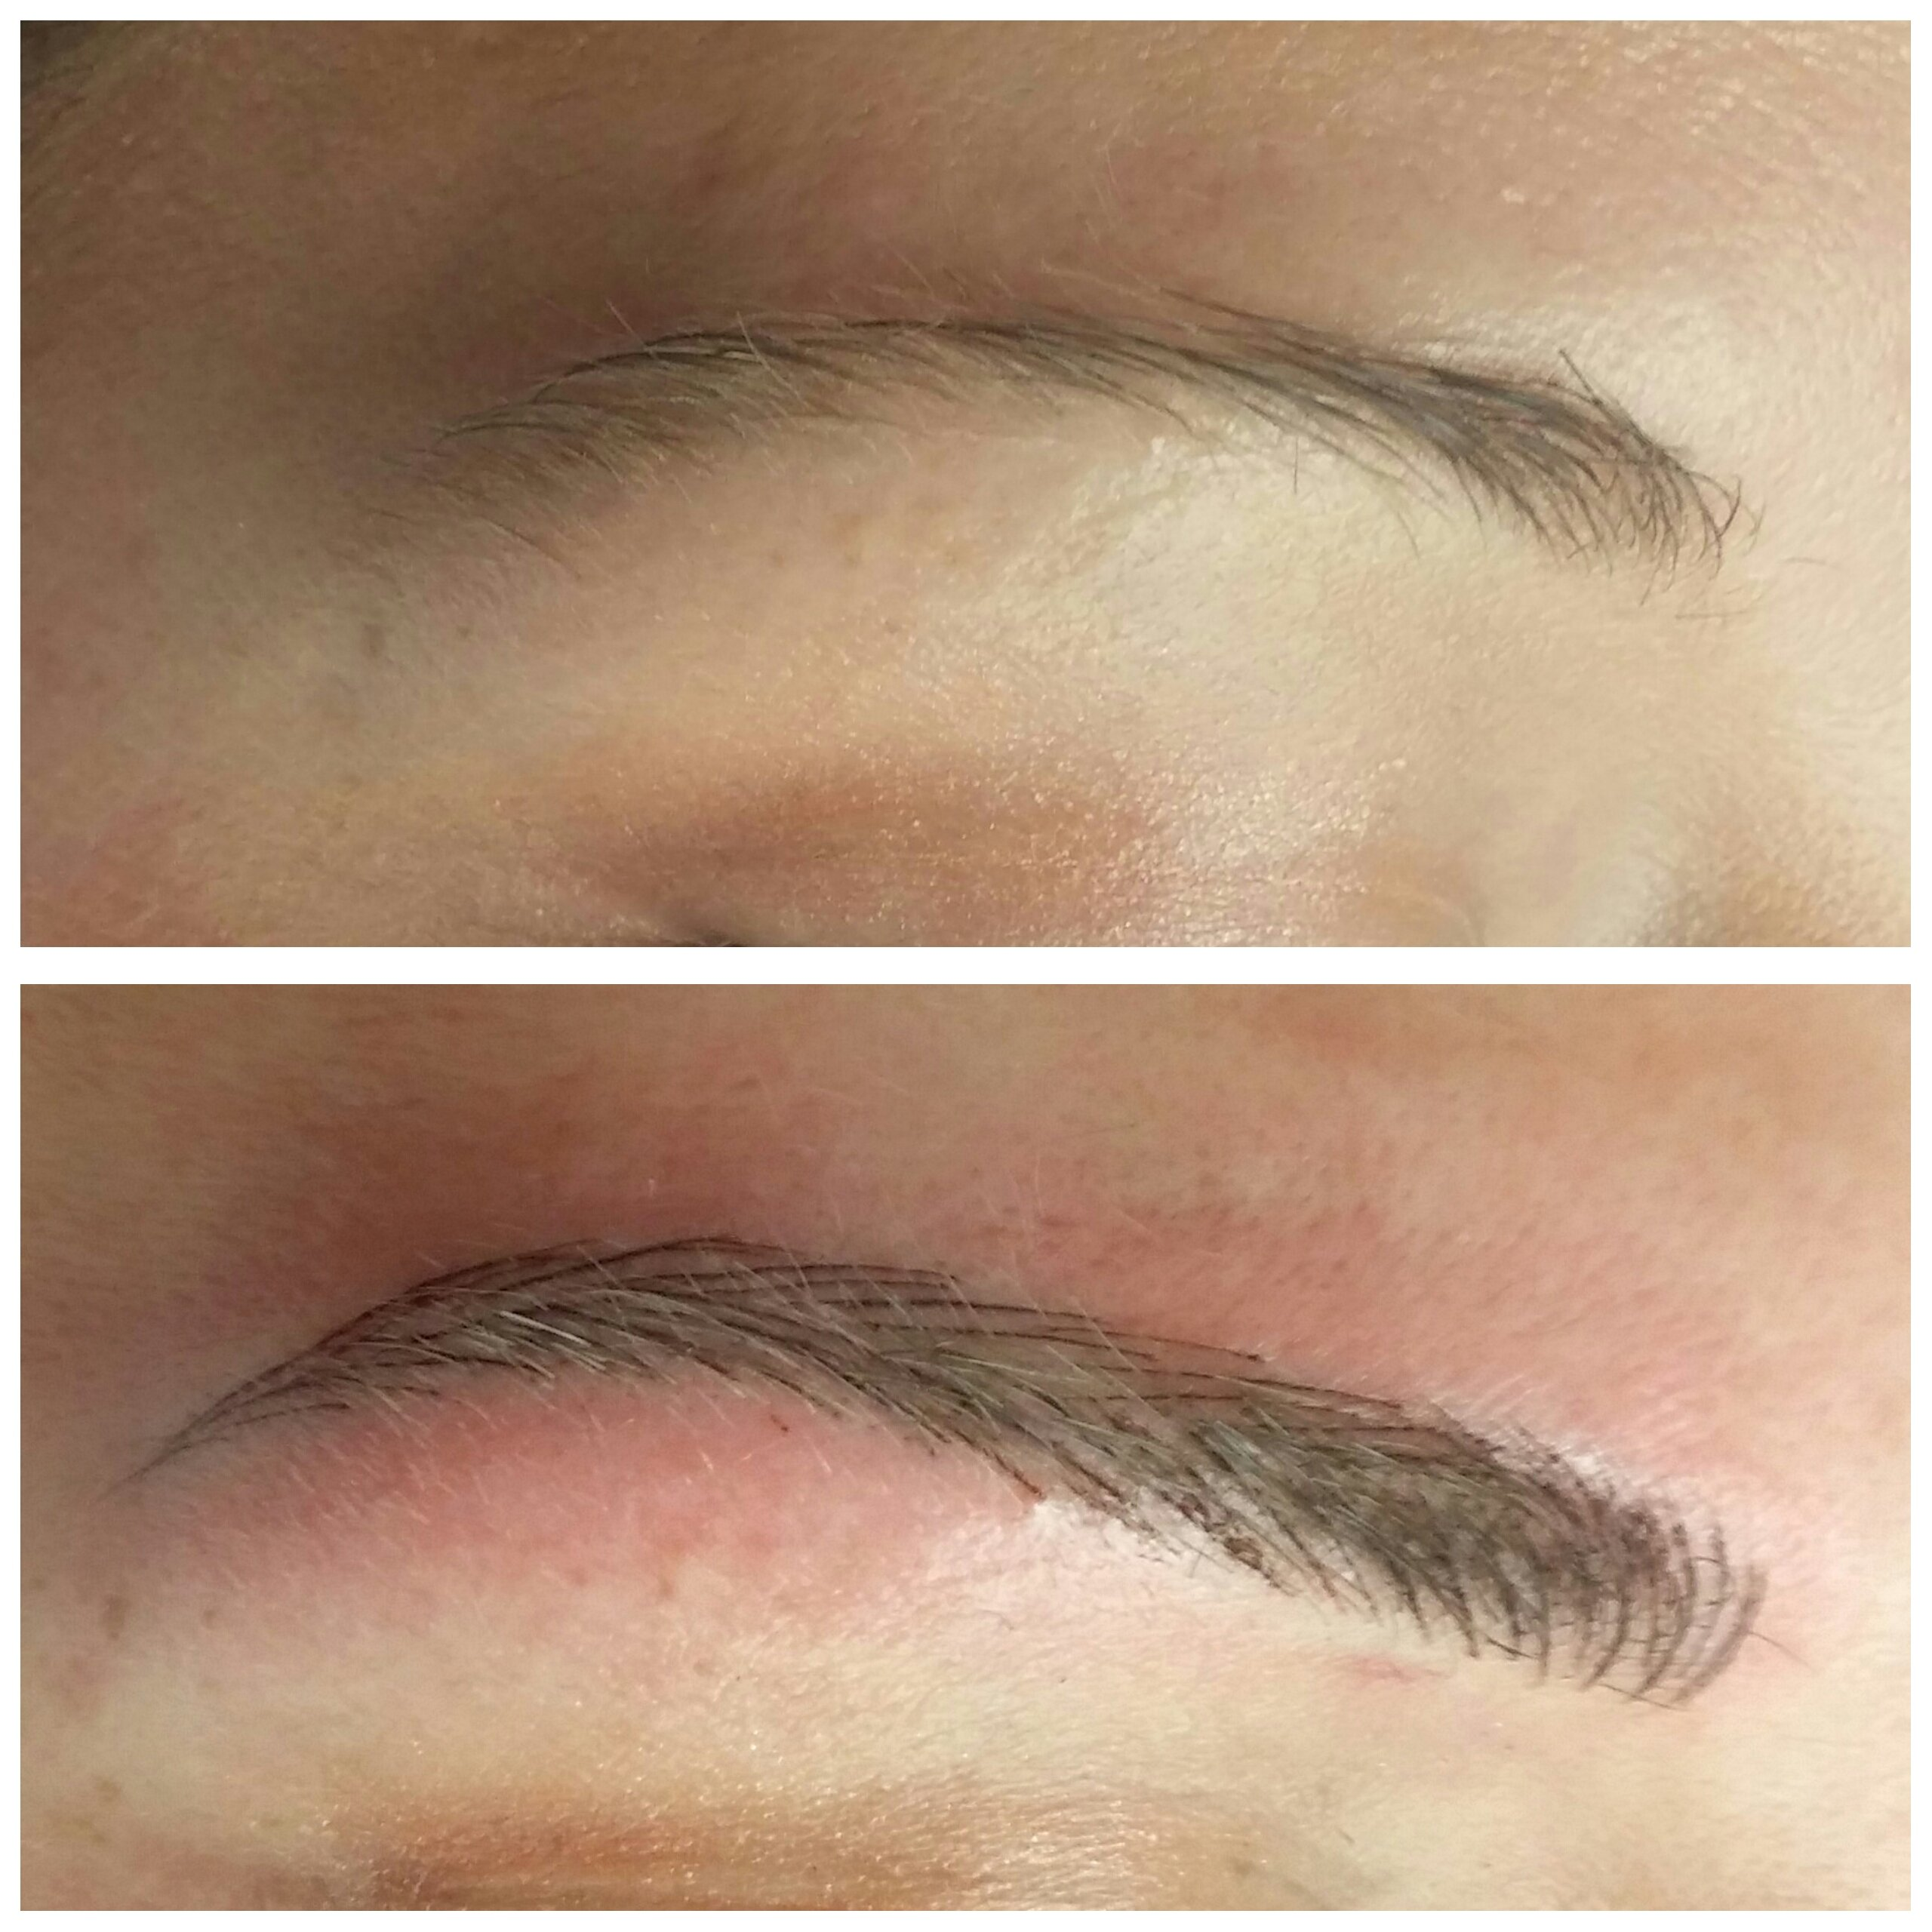 Before and after images demonstrate the result of the Microblading 3D Brow Enhancement service.